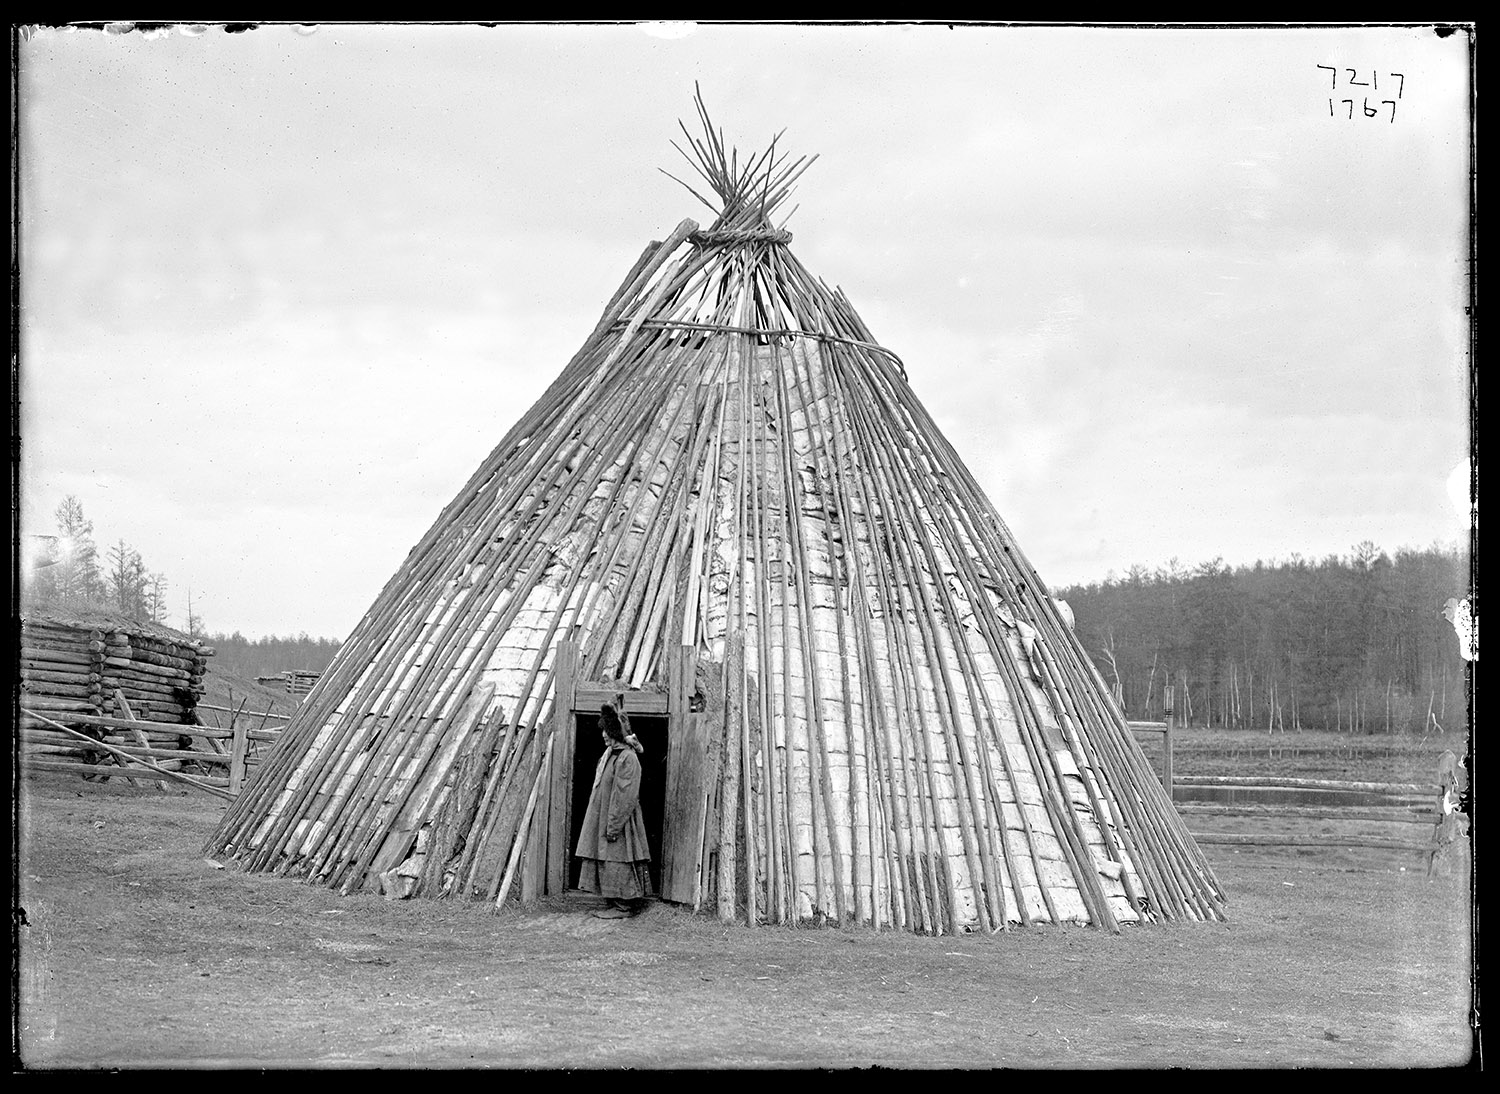 Person stands in the entrance of a conical, tipi-like structure constructed of reindeer hides and wooden poles.